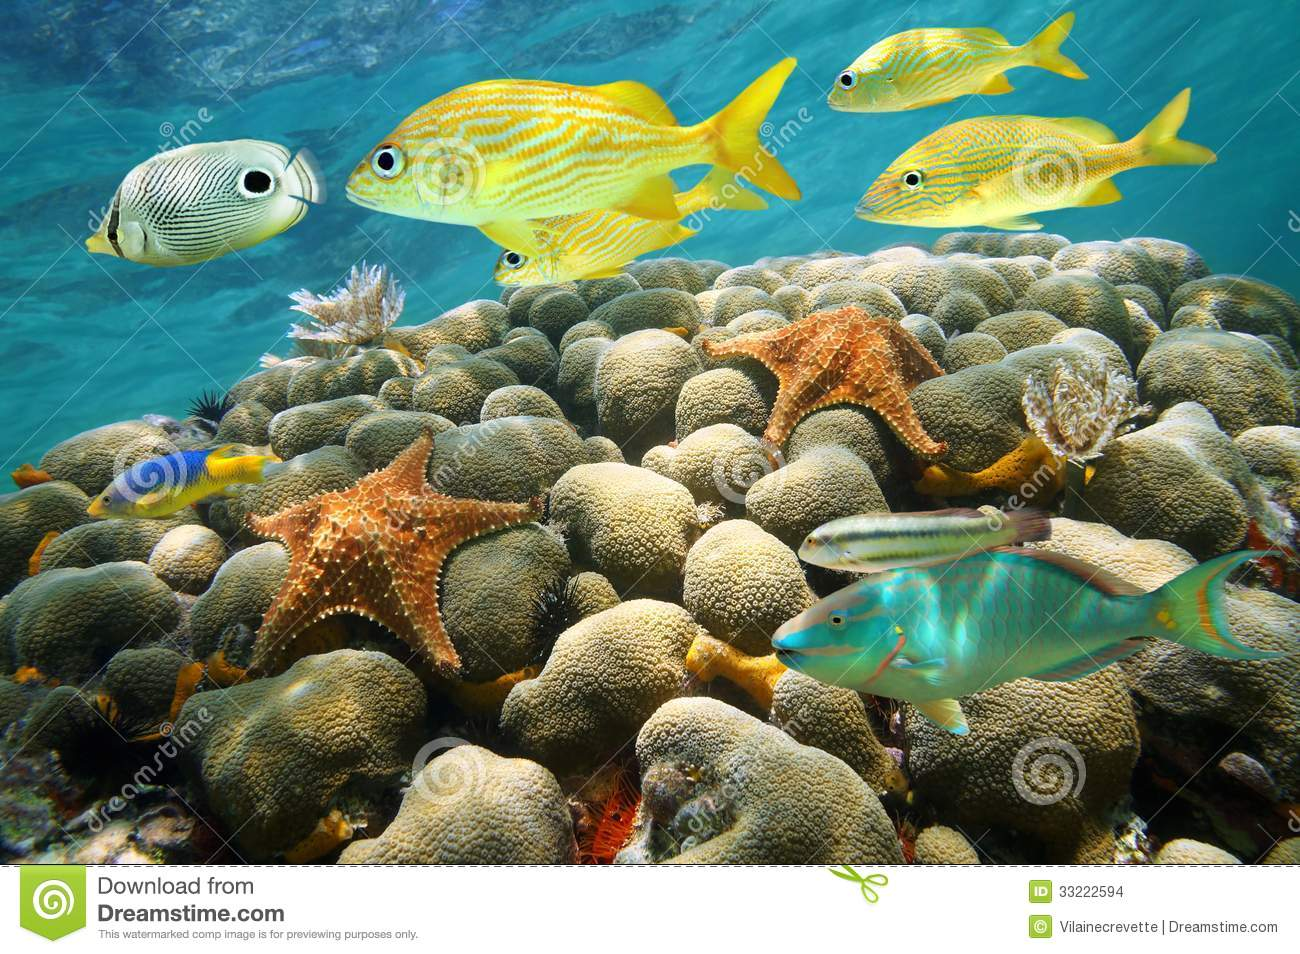 Starfish and tropical fish in a coral reef stock images for Caribbean reef fish